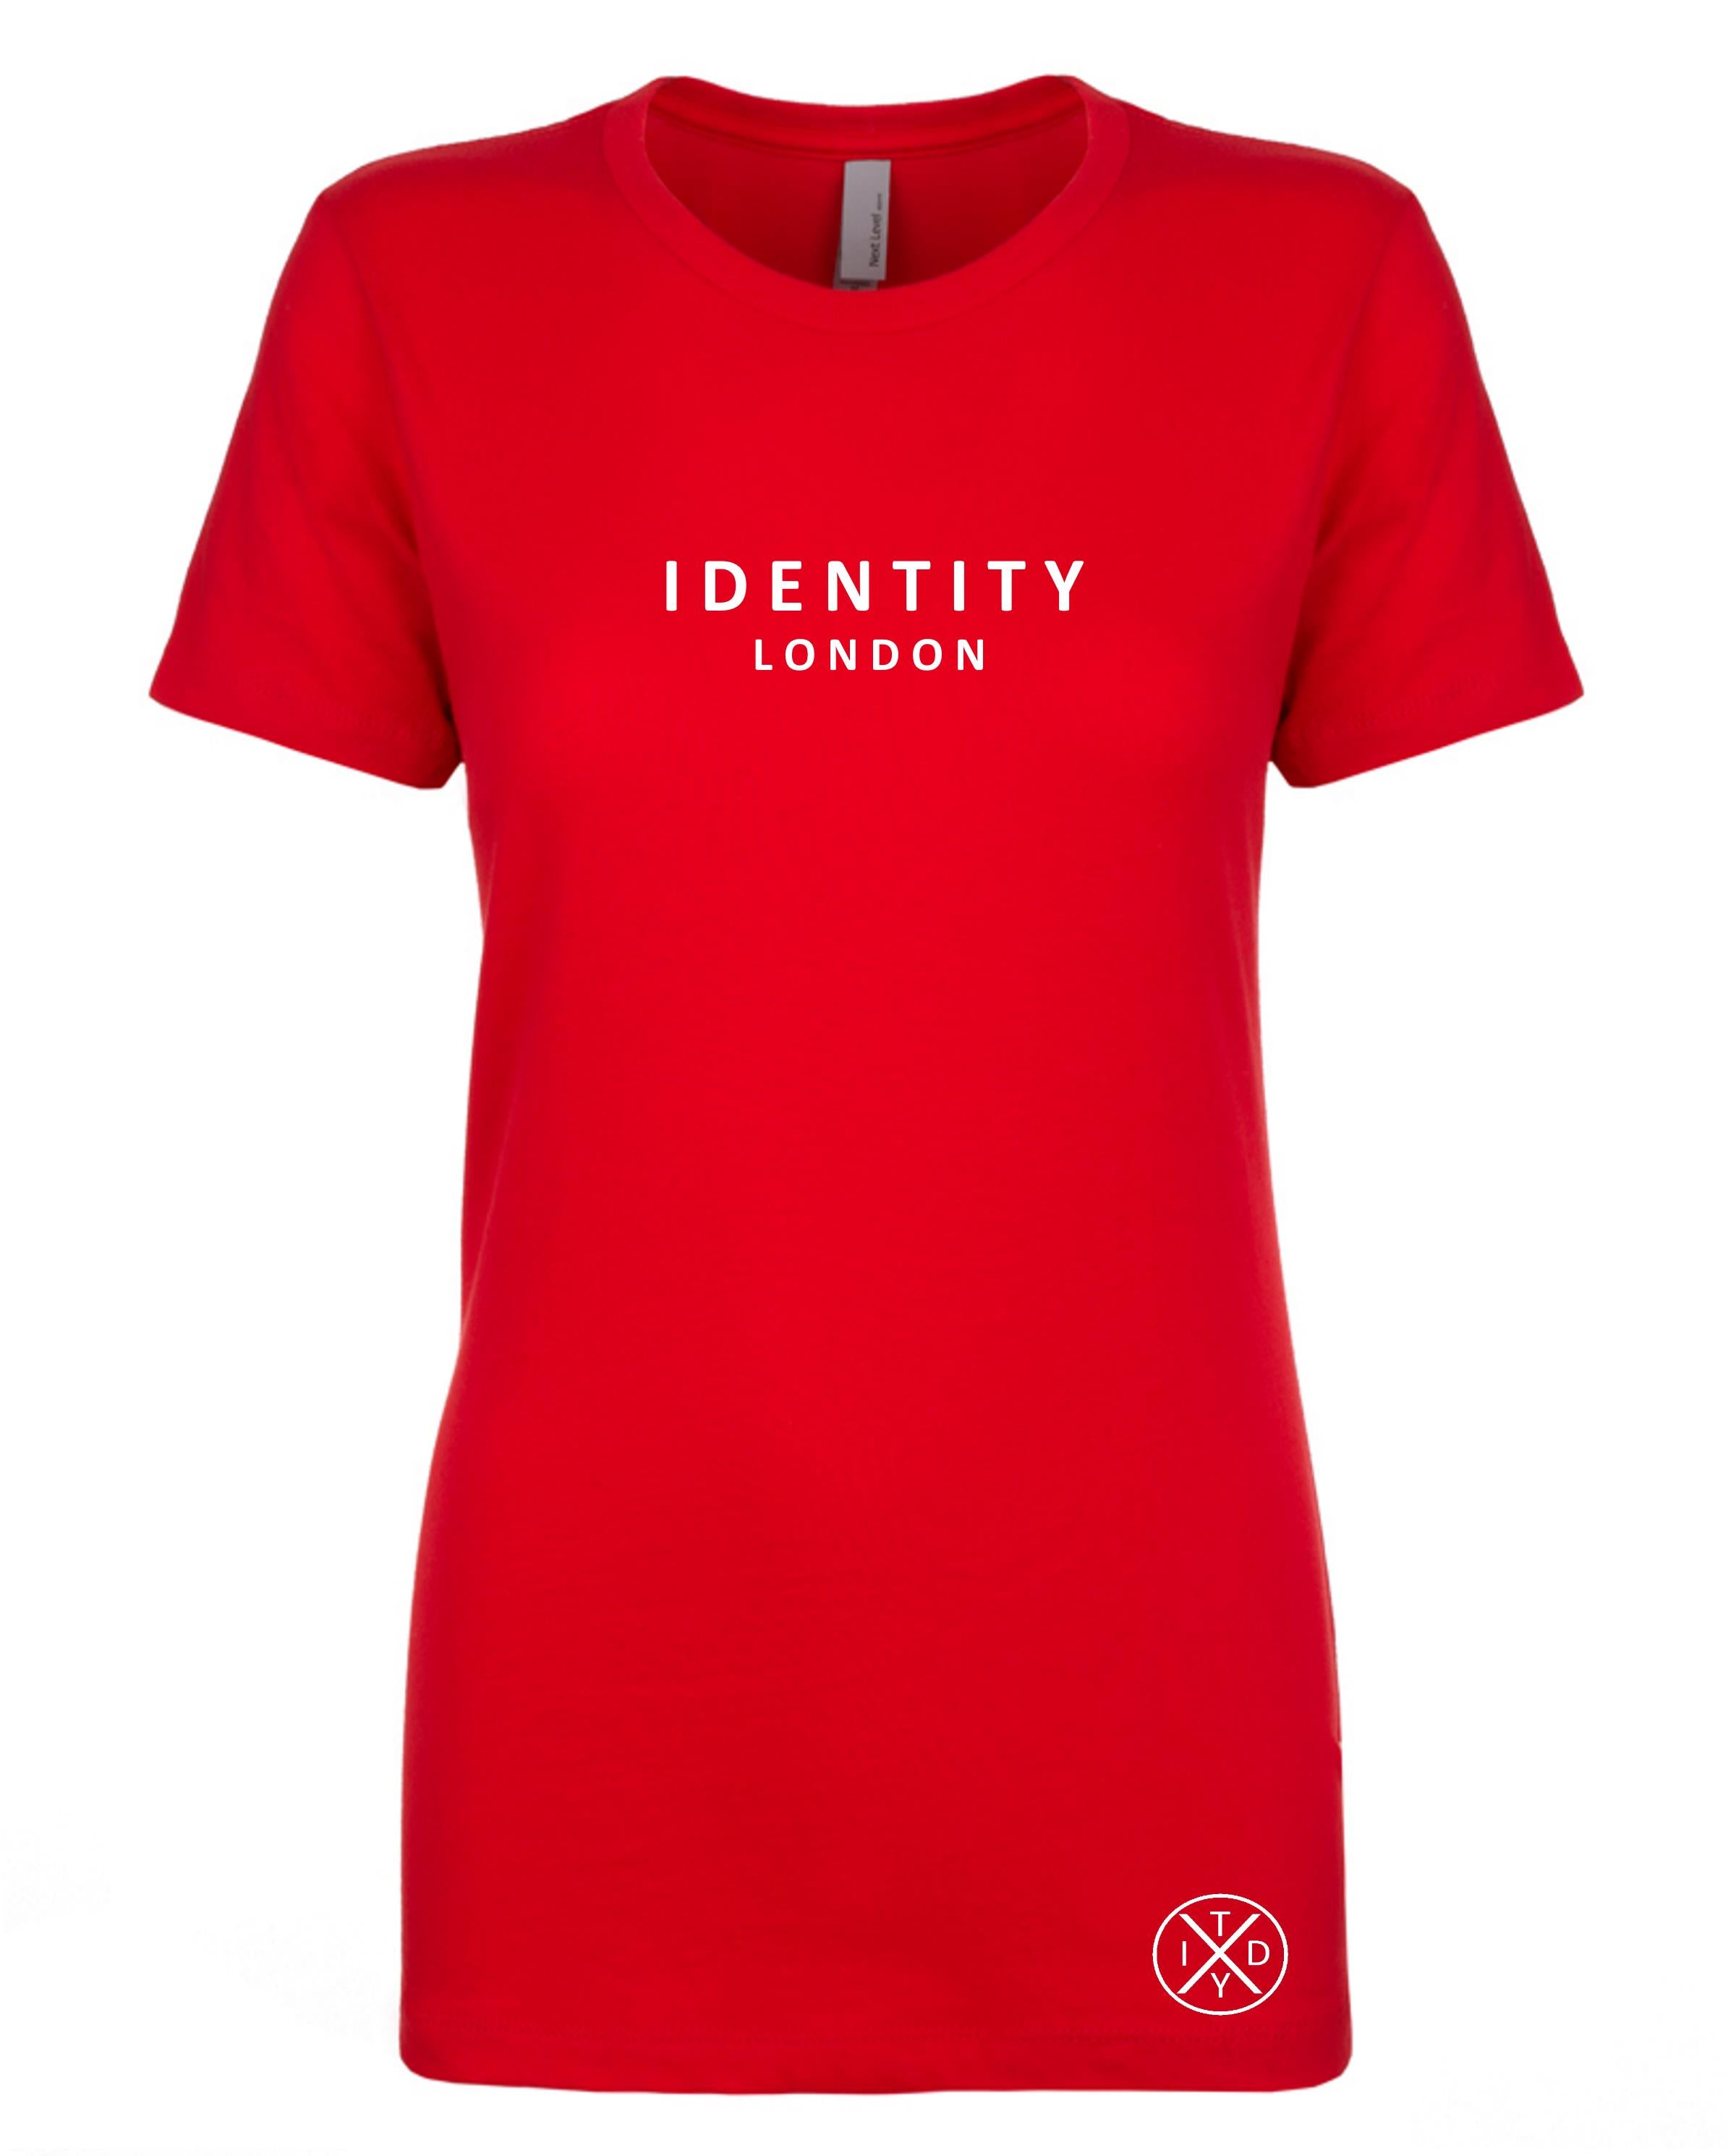 Womens Statement London T-Shirt (Red)